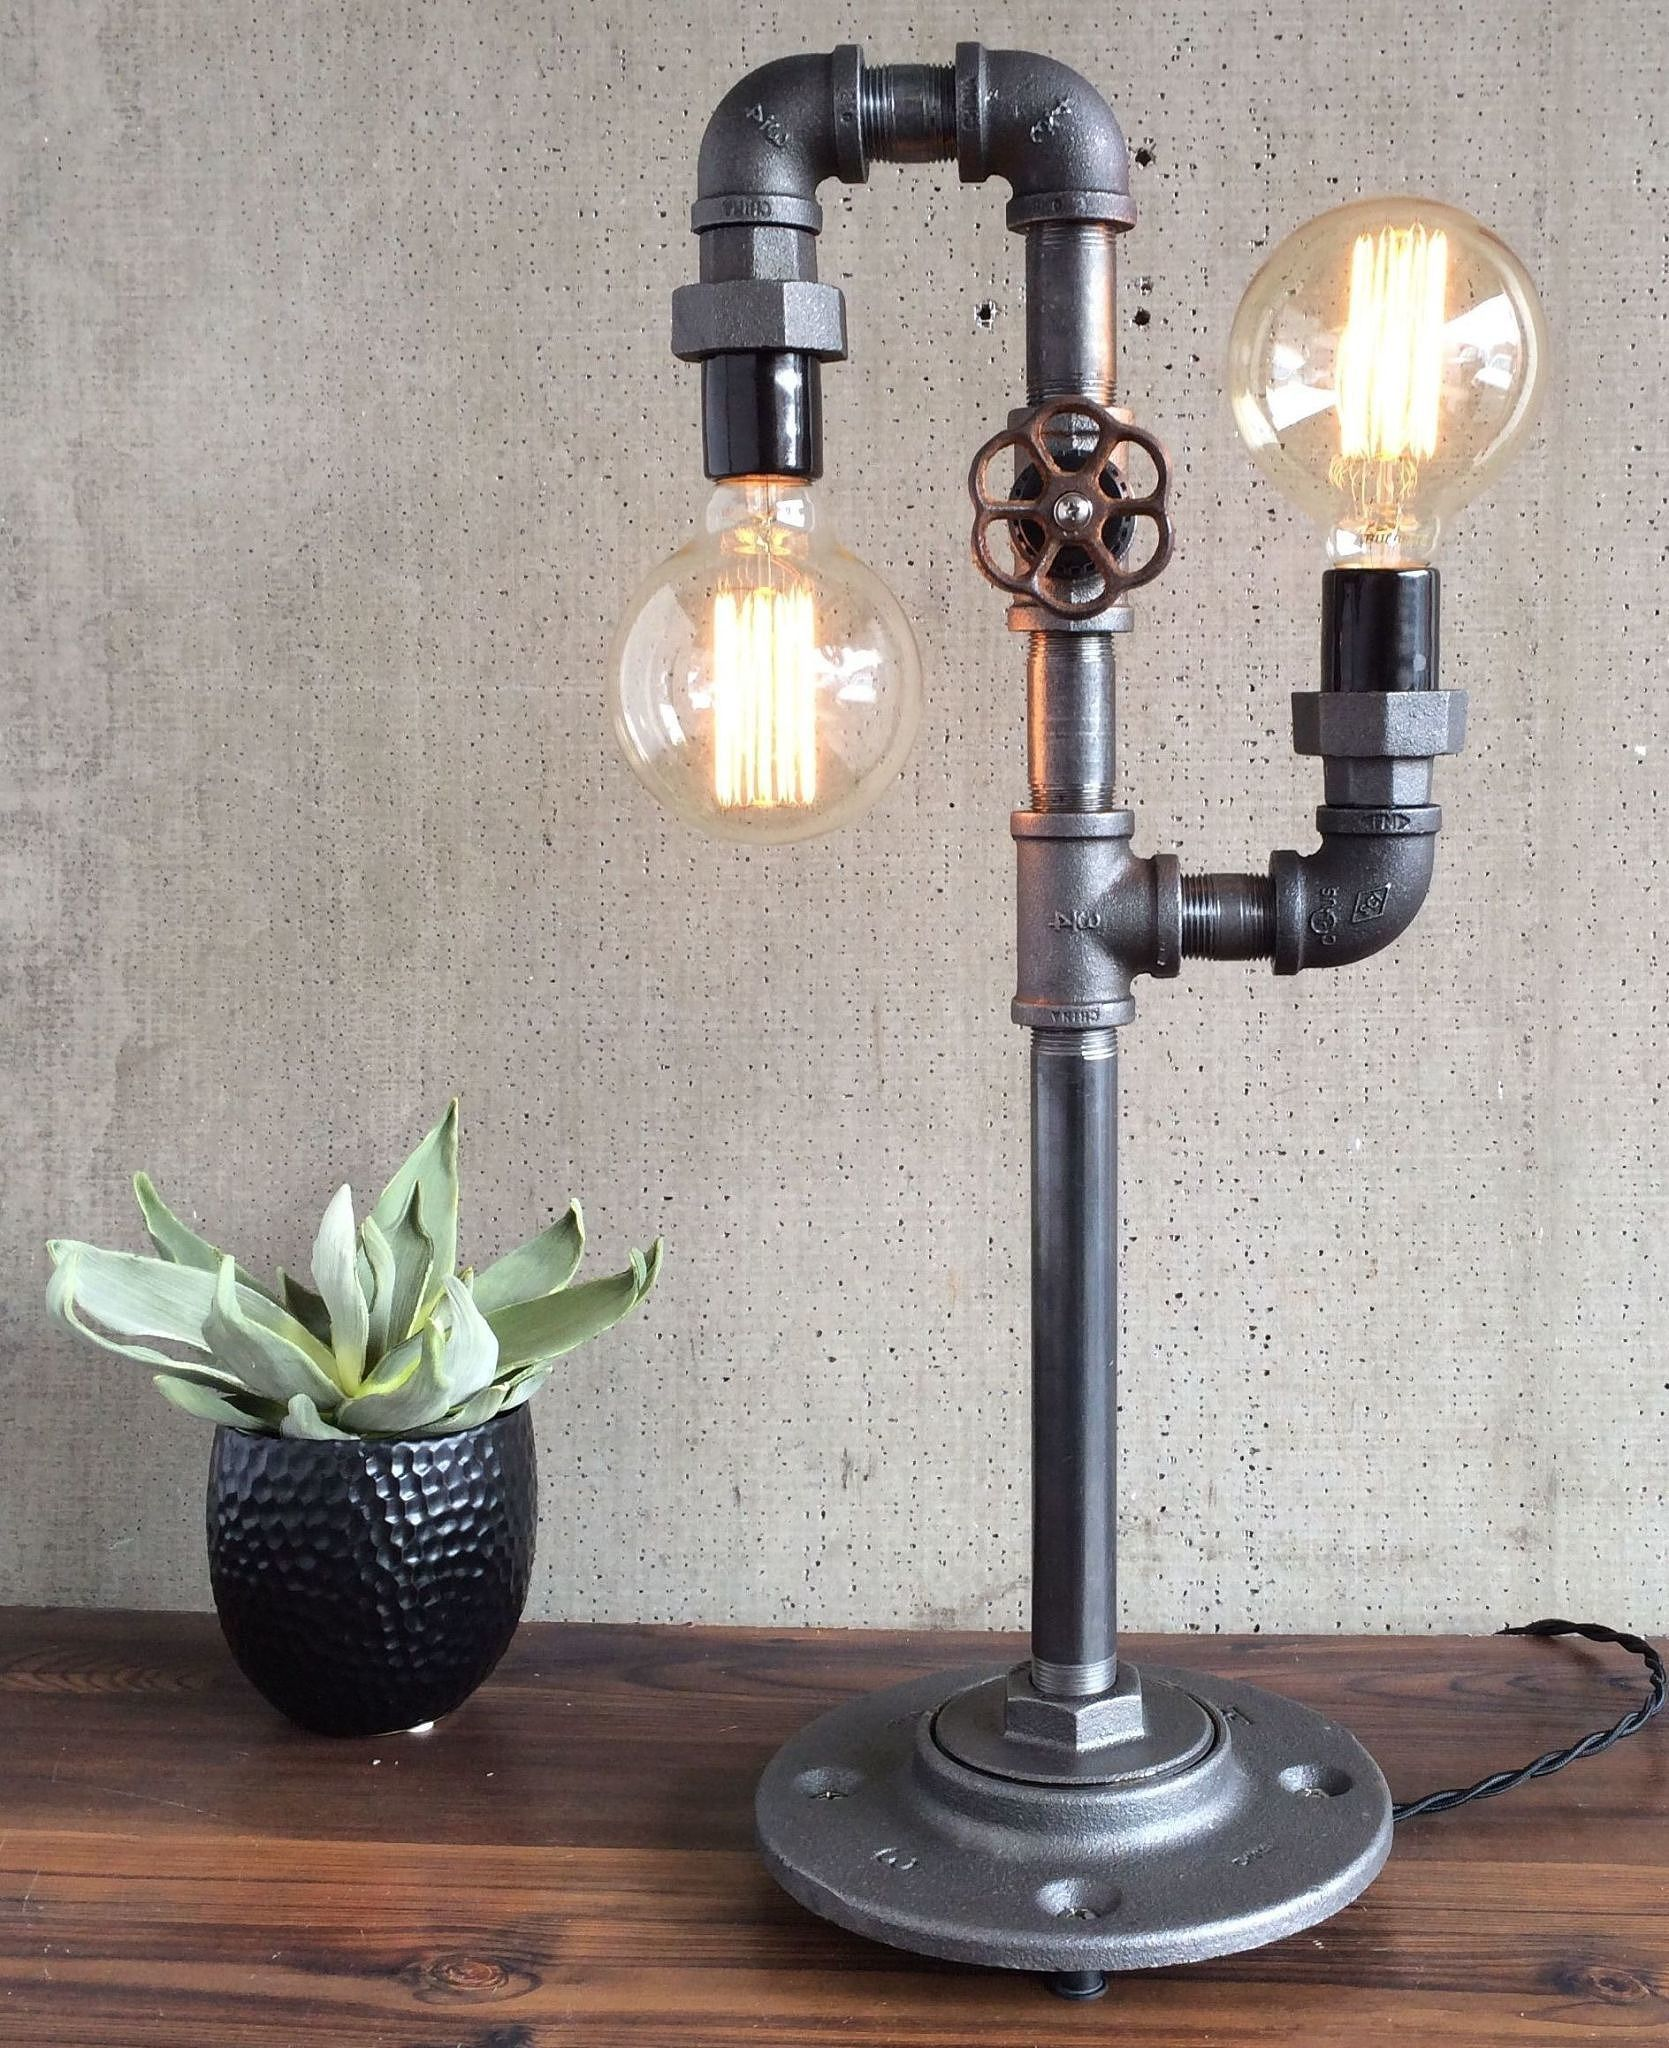 lot poles floating your base fog small lumber lamp accentuate night pipe simple column bench accents combined plus ideas support light with black paper painted also grey wall iron adjustable standing lavish shade table bowl lamps up parking and well featuring rocket floor motive as golden